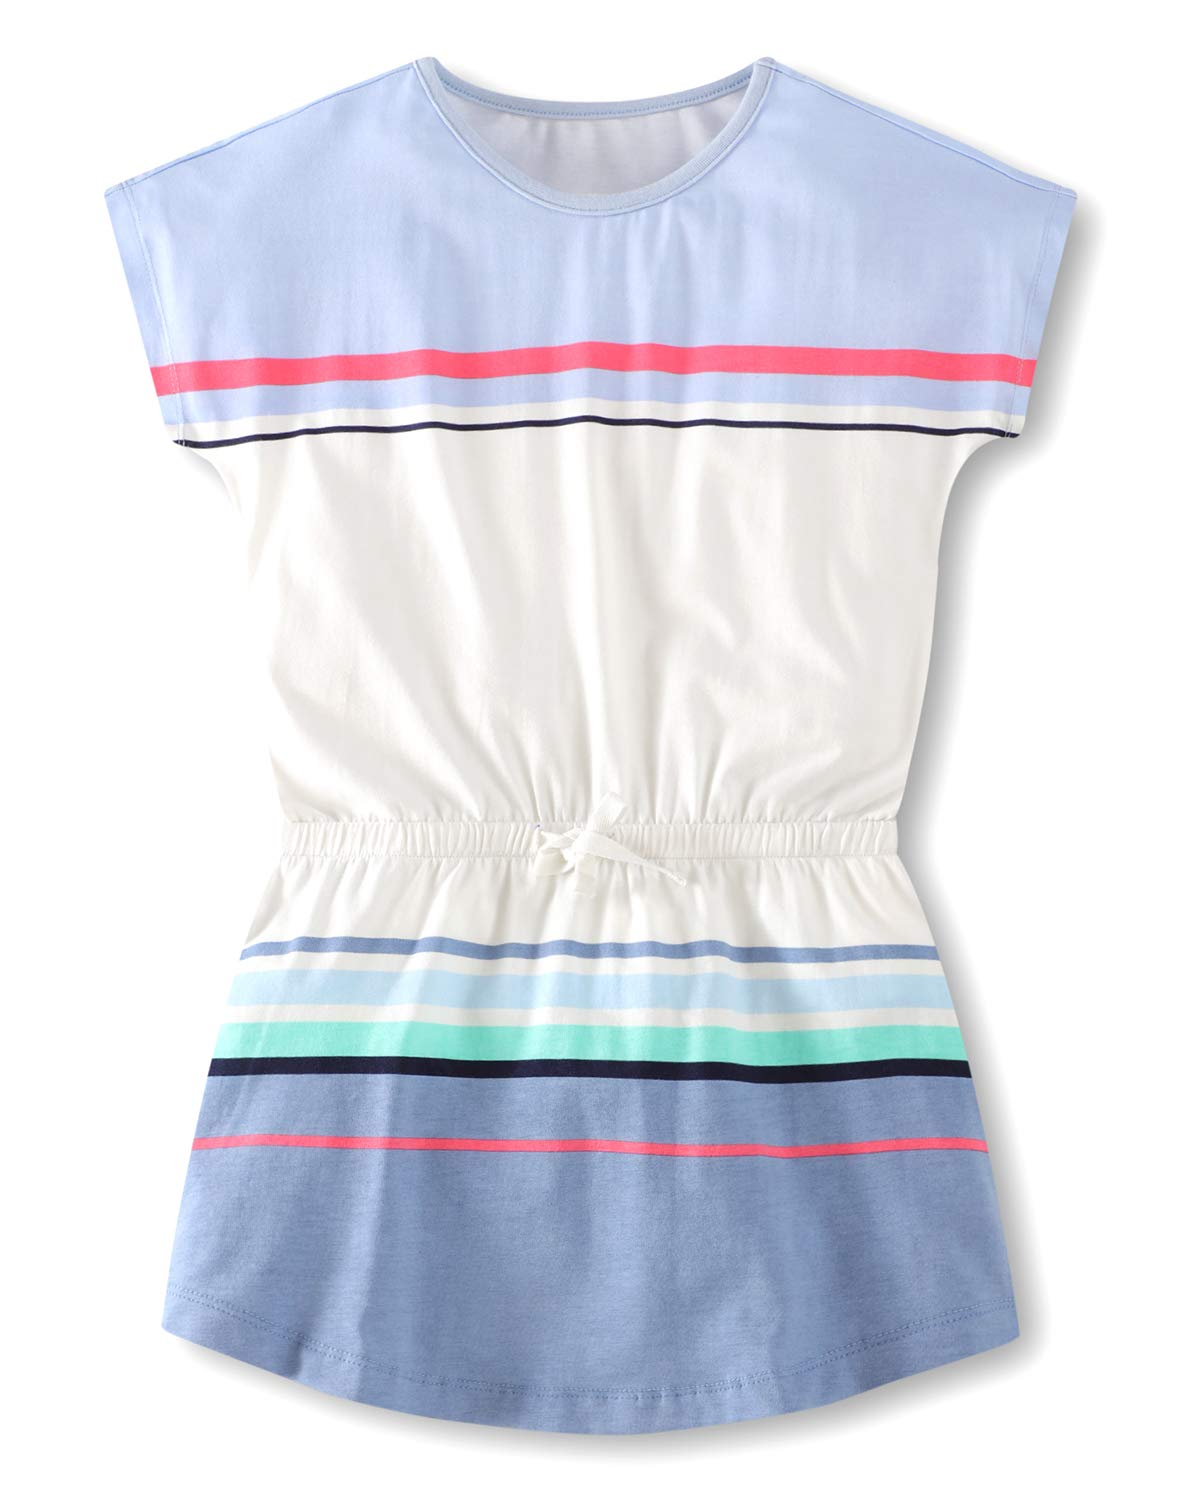 37f93e3f66b Fiream Girls Summer Applique Cotton Short Sleeves Casual Striped Dresses  product image